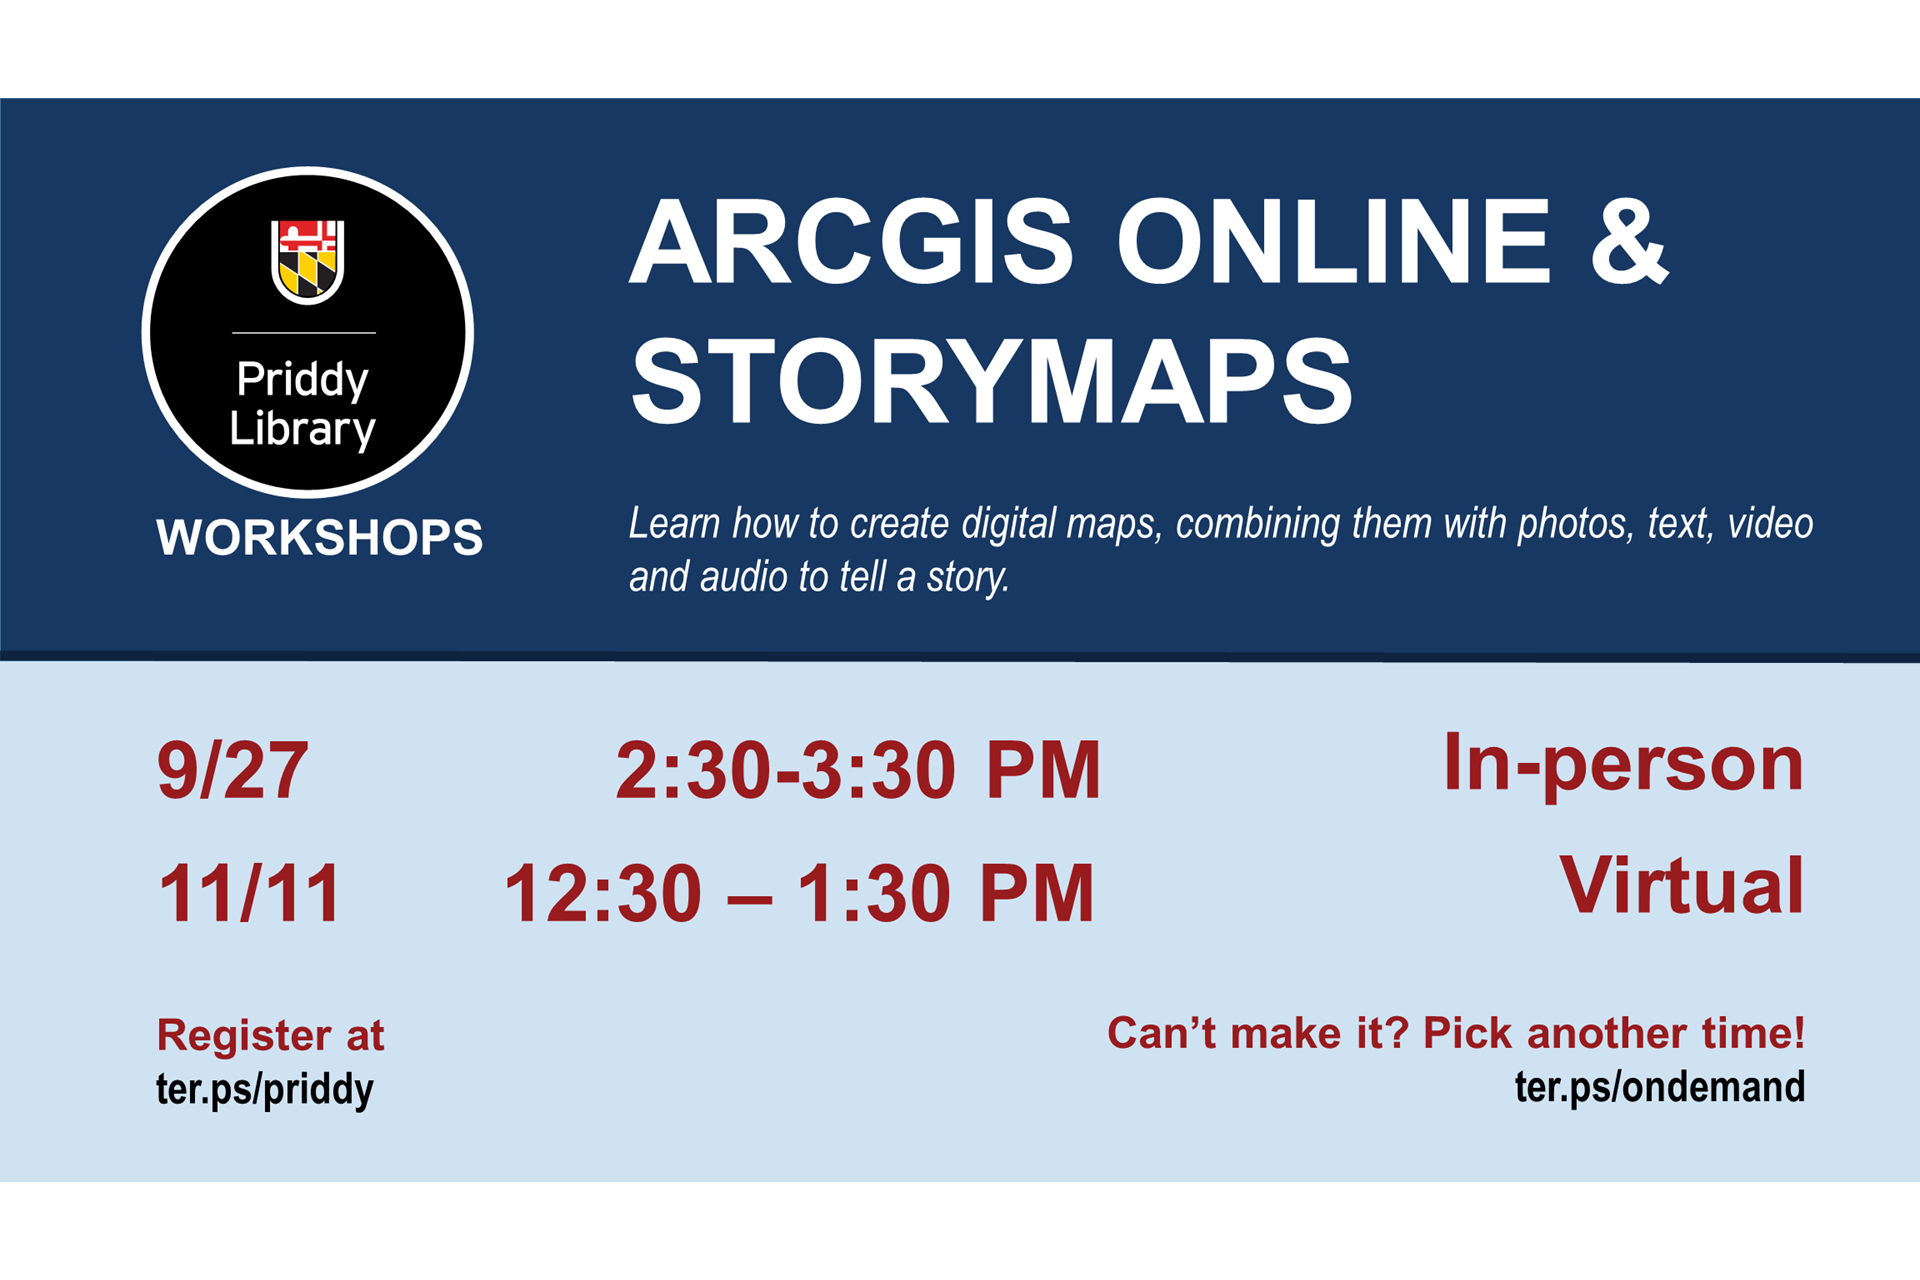 ArcGIS Online & StoryMaps Workshop Flyer